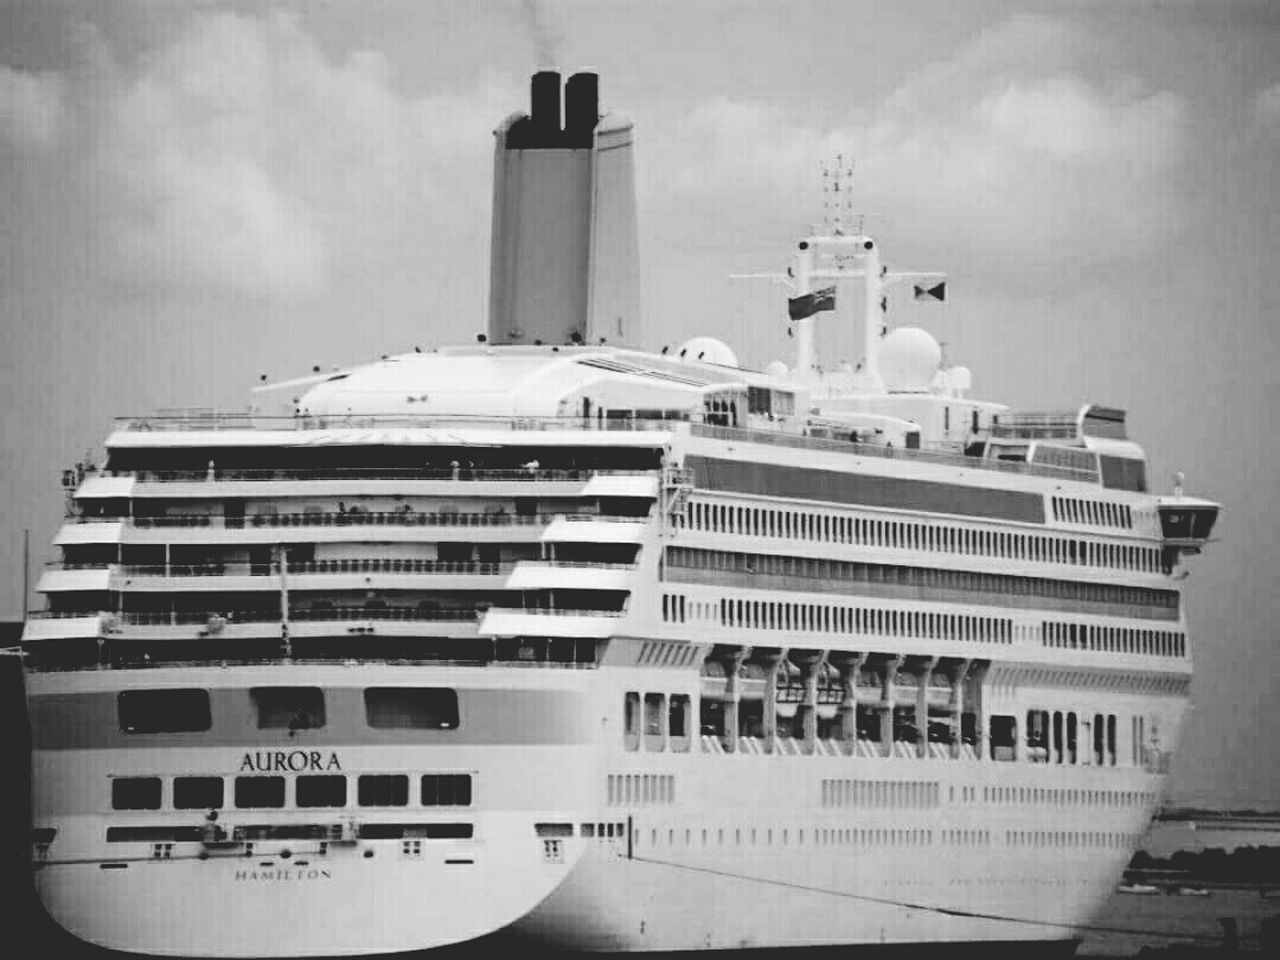 Cruise Ship Cruiseship Cruise Boat Southampton Docks Decking Sea Black And White IPhoneography Black & White Eyeemphotography